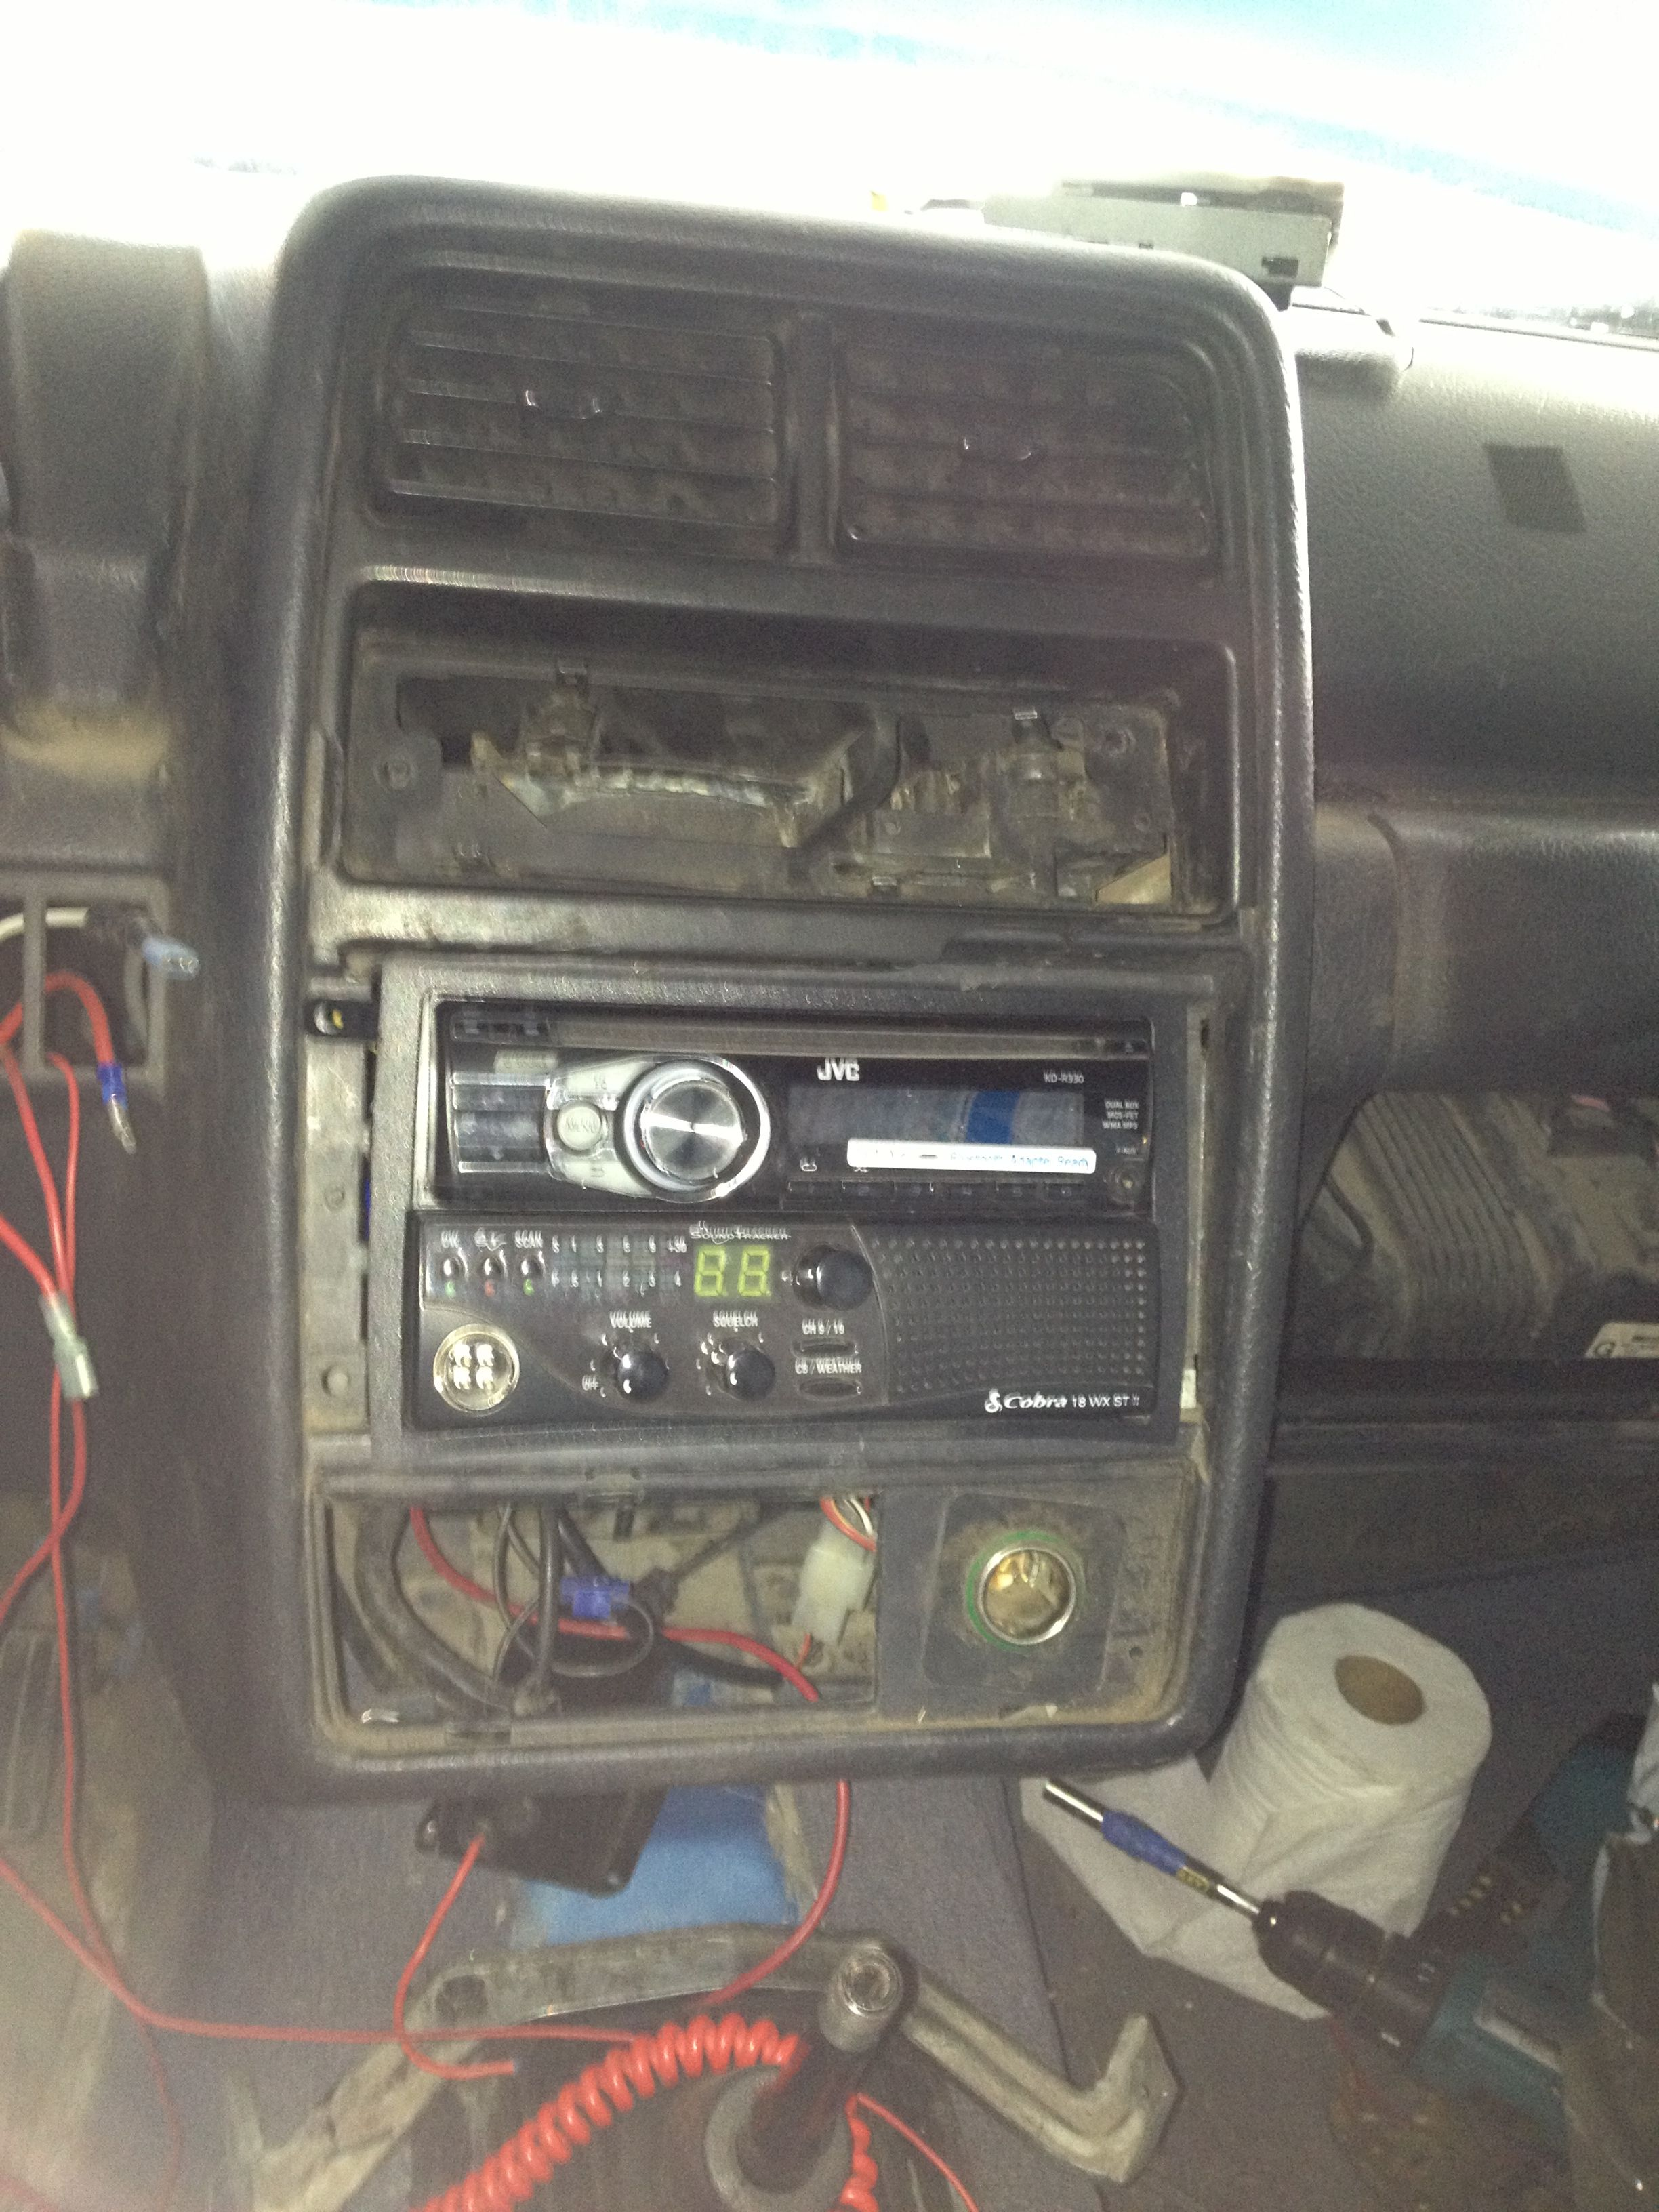 1994 Geo Tracker Cb Stereo In Dash Install Car Radio Installation Projects